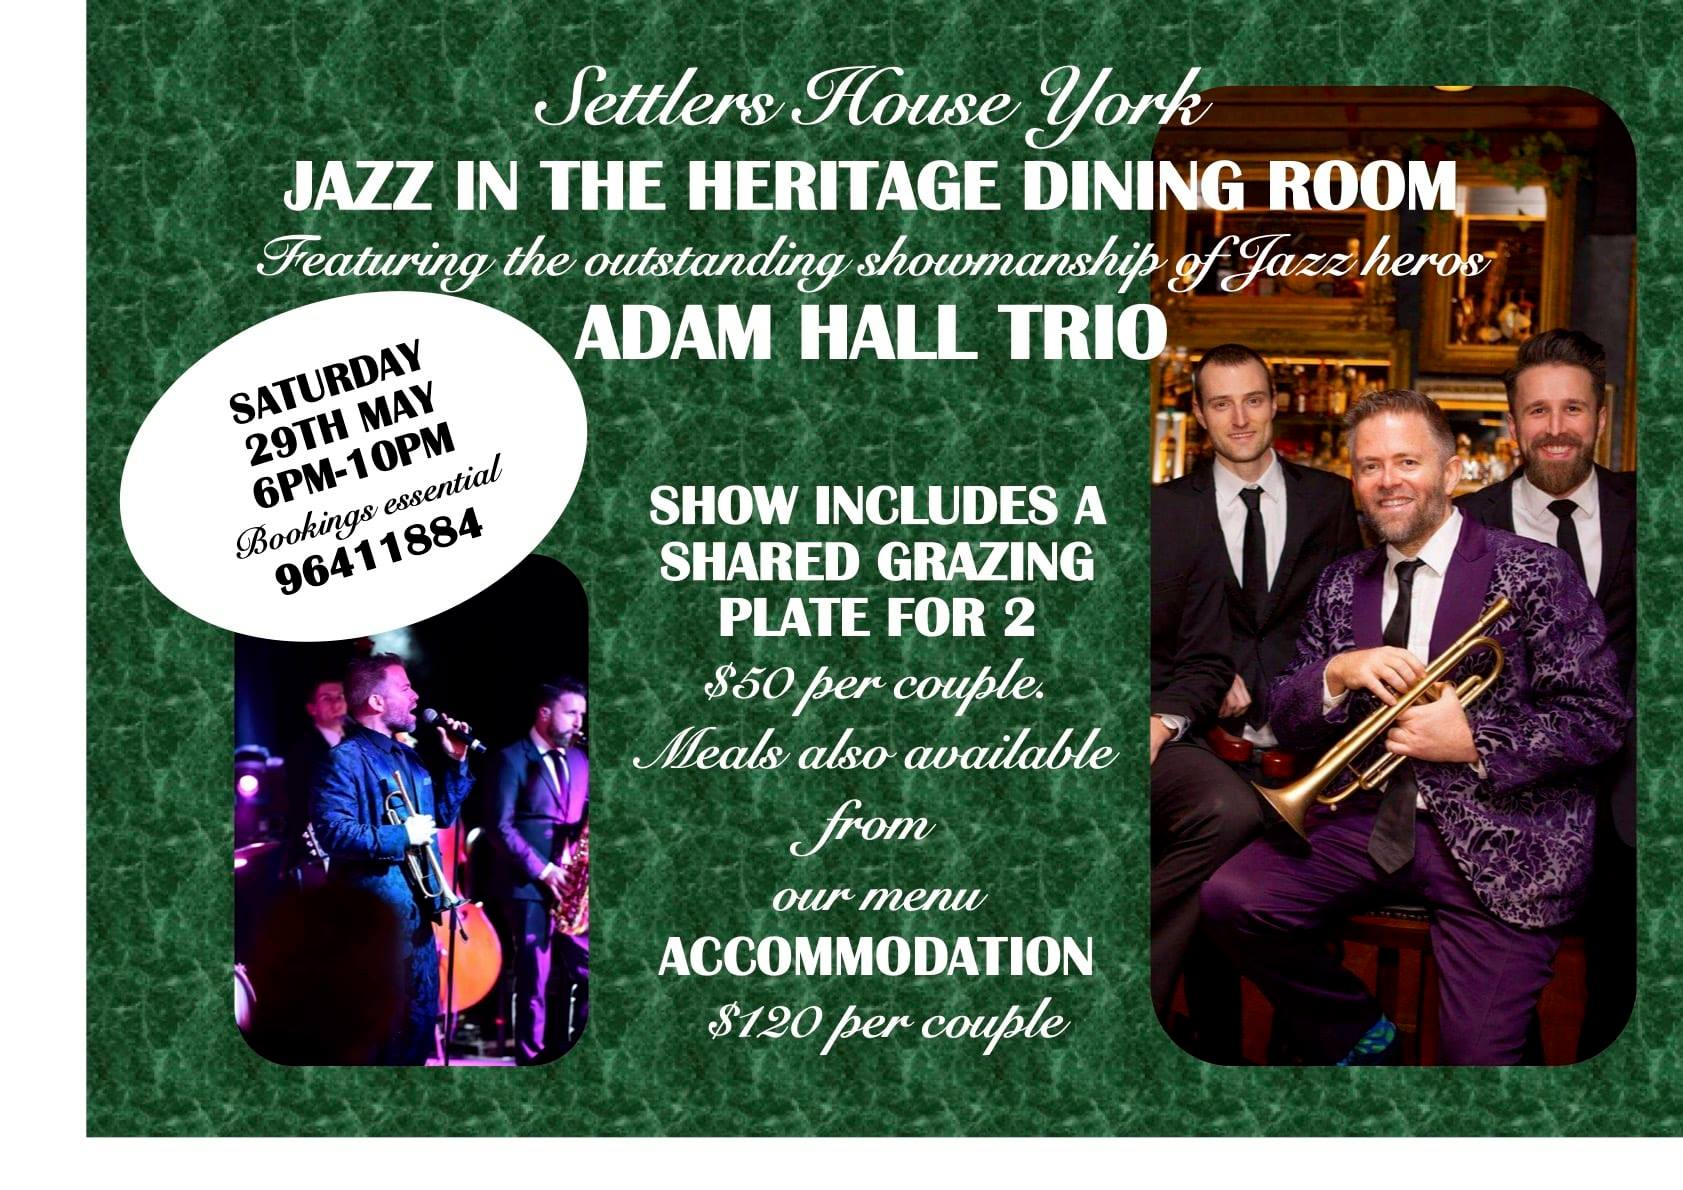 Jazz in the Heritage Dining Room at Settlers House